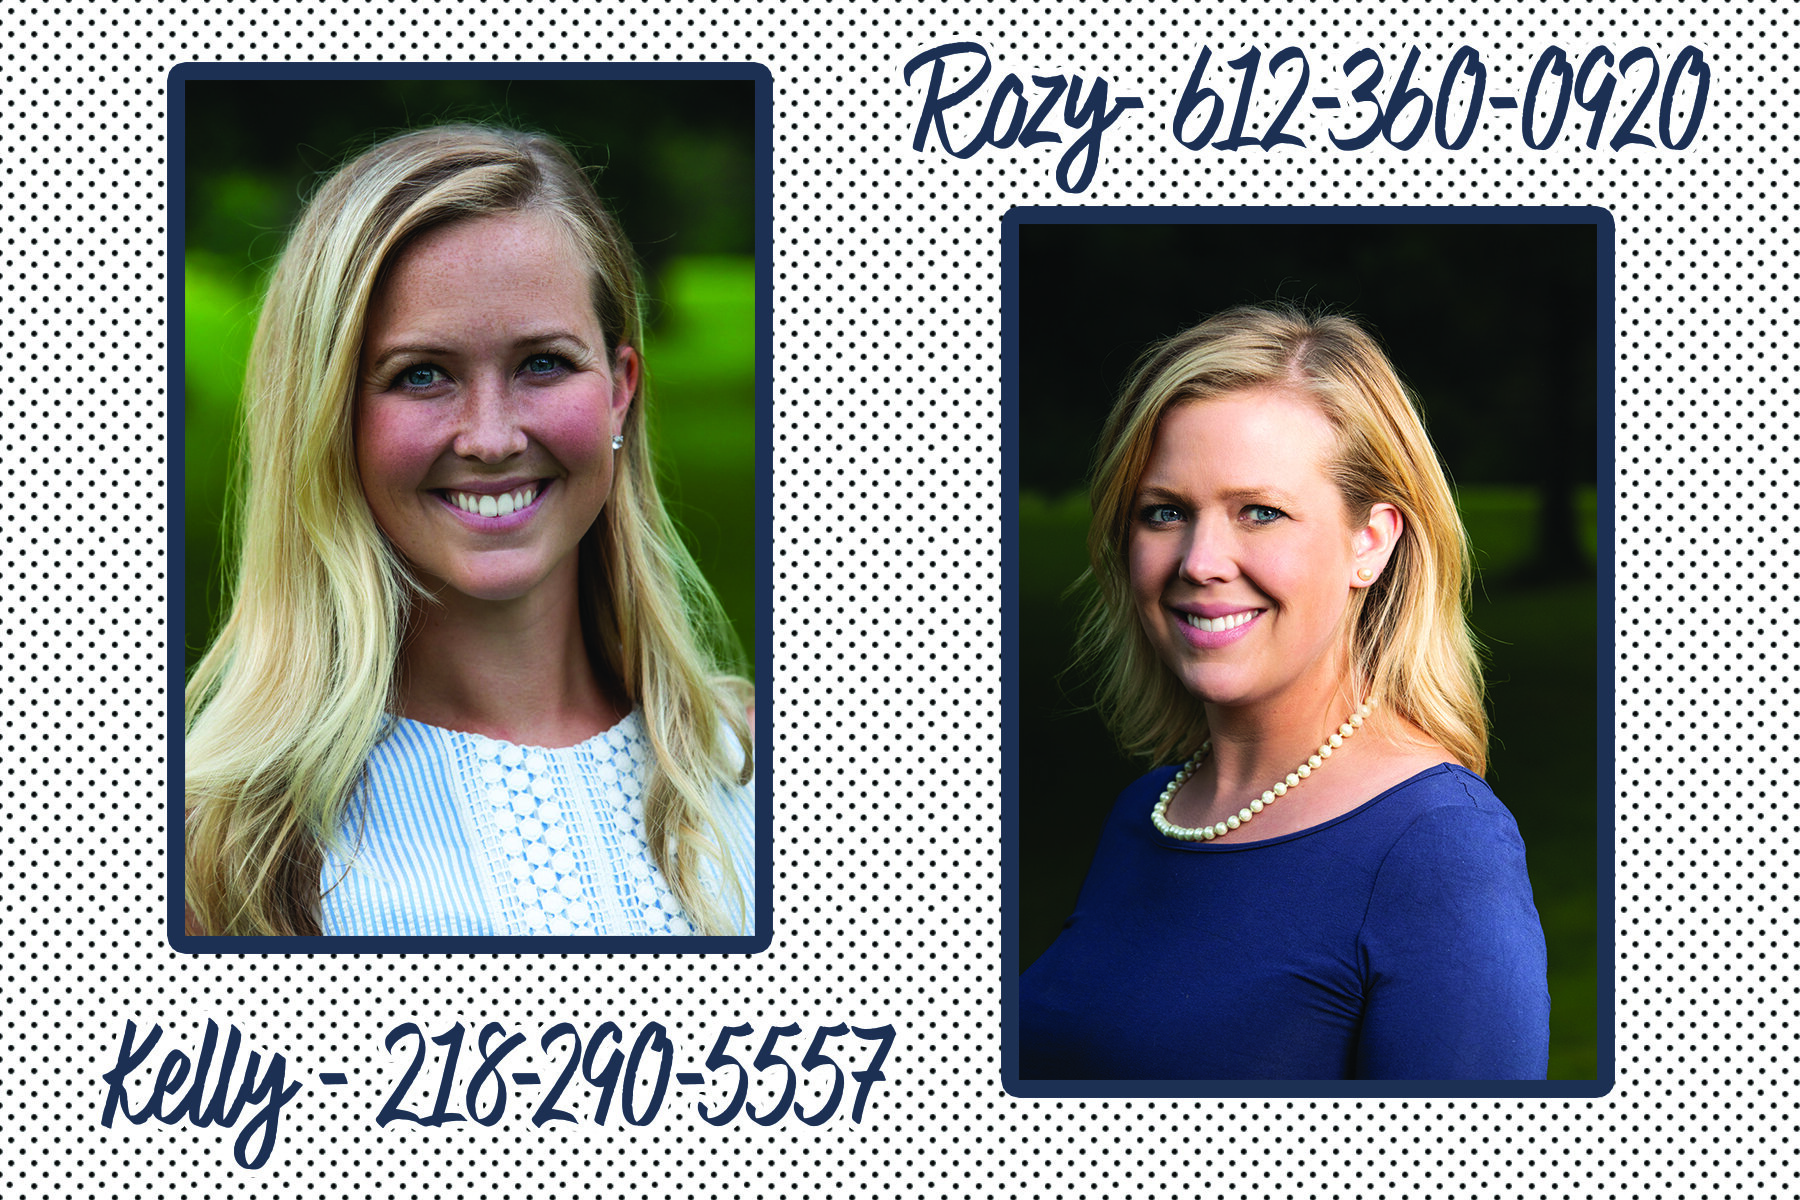 Let's create something beautiful! - Hello! We are sisters, Kelly & Rozy. We would love to help make your event something special, beautiful and unique for you!Give either of us a call and we'd love to chat about your upcoming wedding, party or event!Rozy - 612-360-0920 and Kelly 218-290-5557